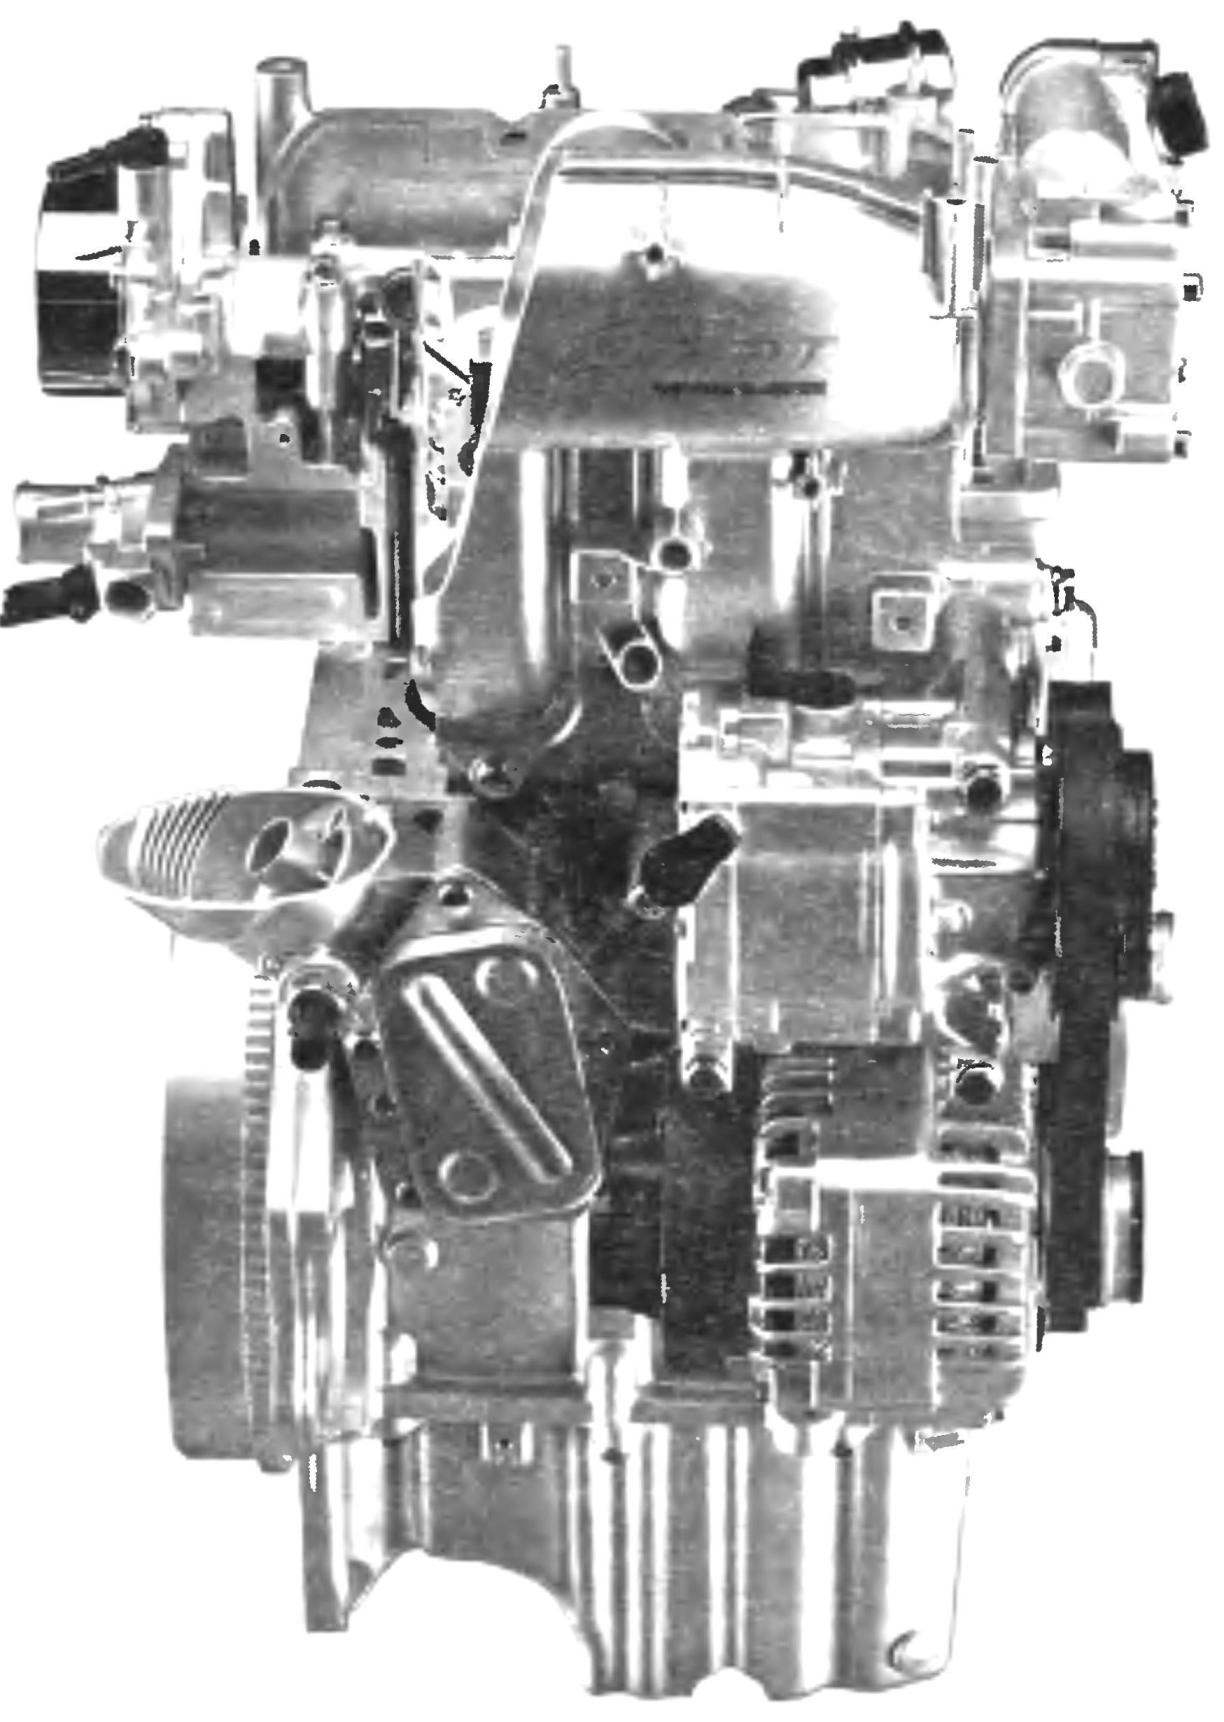 The engine of FIAT-500